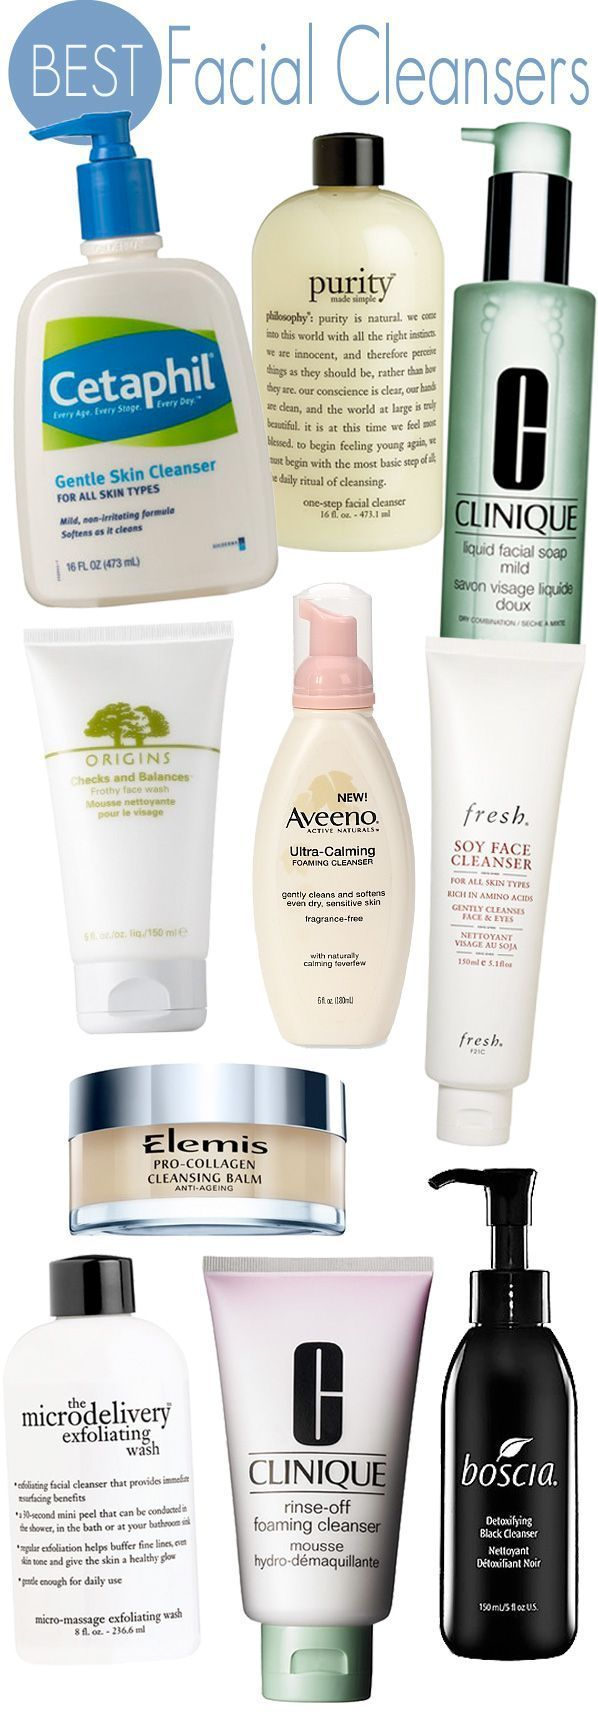 The best facial cleansers  Flawless skin  Pinterest  Facial